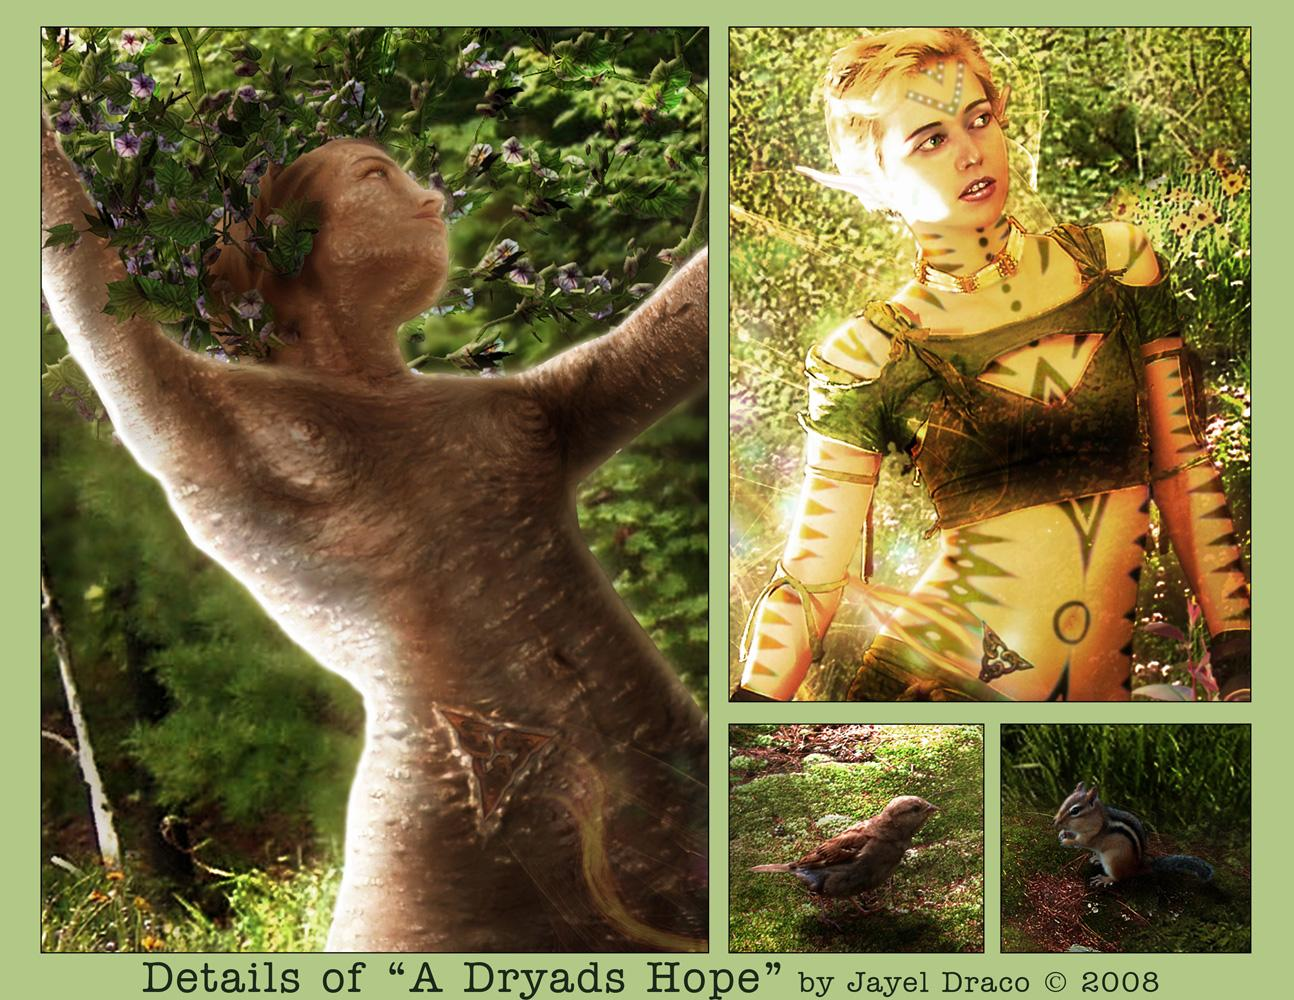 A DRYADS HOPE | Detail - Photography and Fantasy Photmanipulation by Jayel Draco